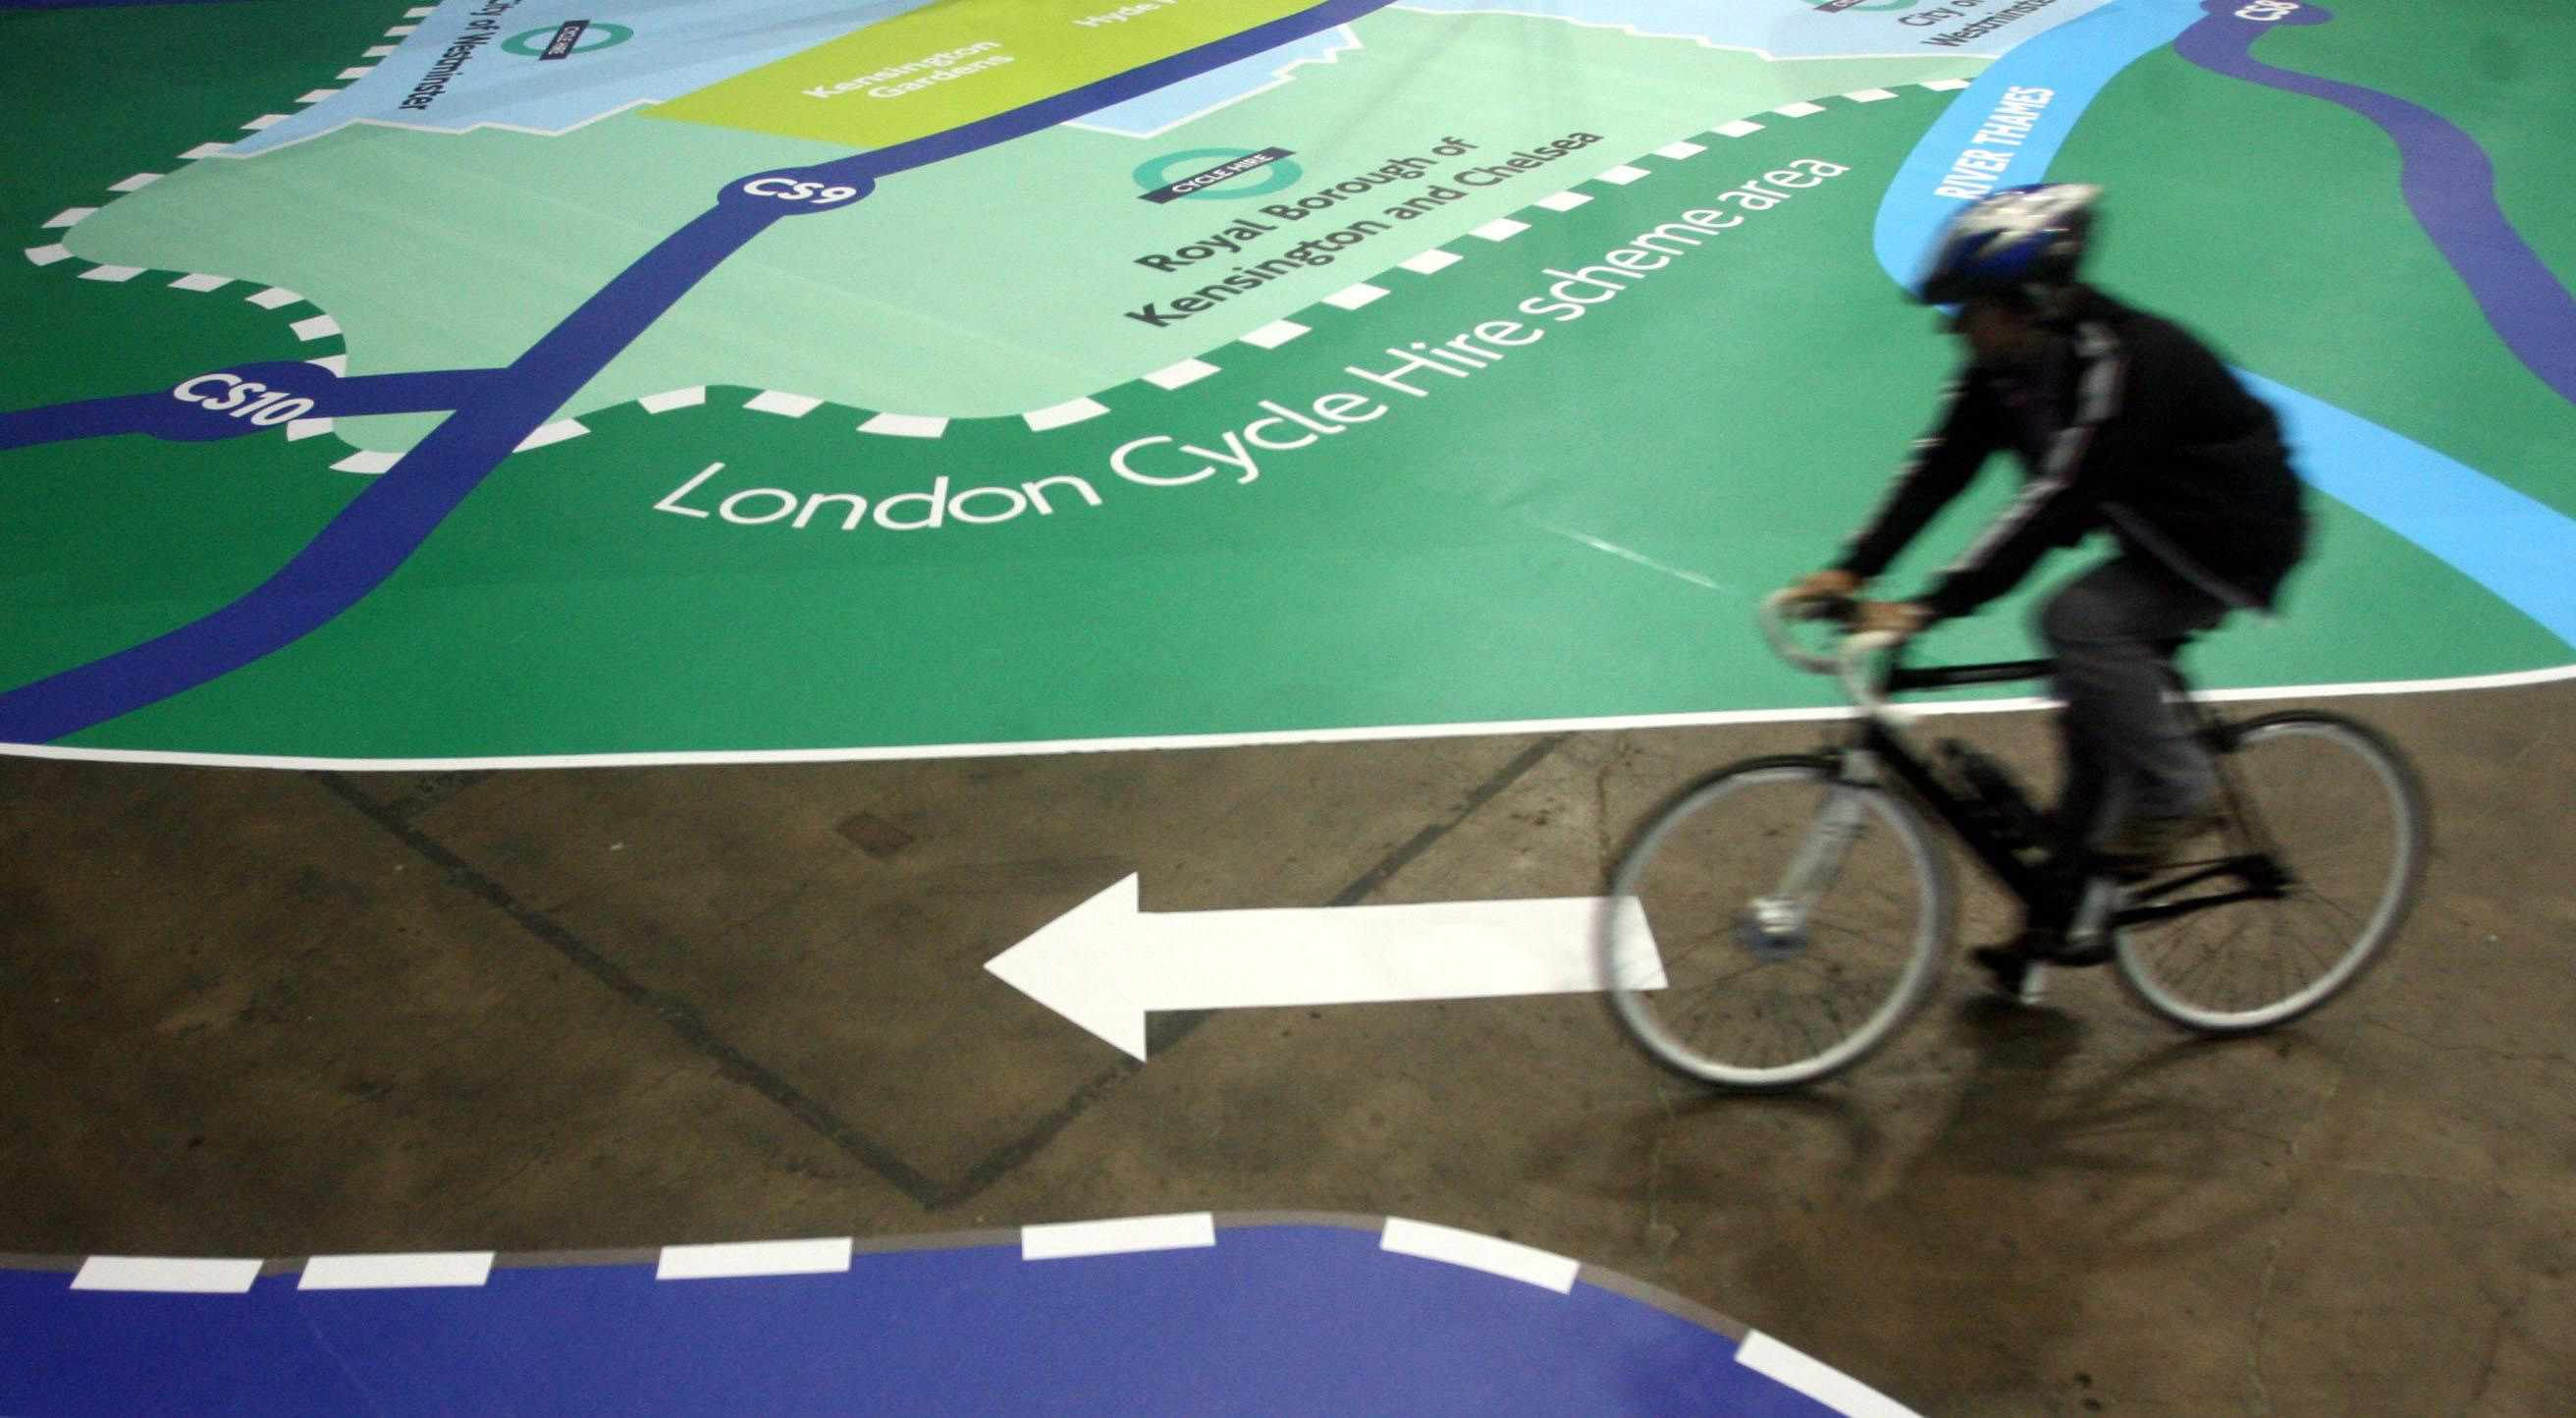 Only 20 percent of 500 cyclists surveyed agreed that helmets improve cycle safety in London, UK